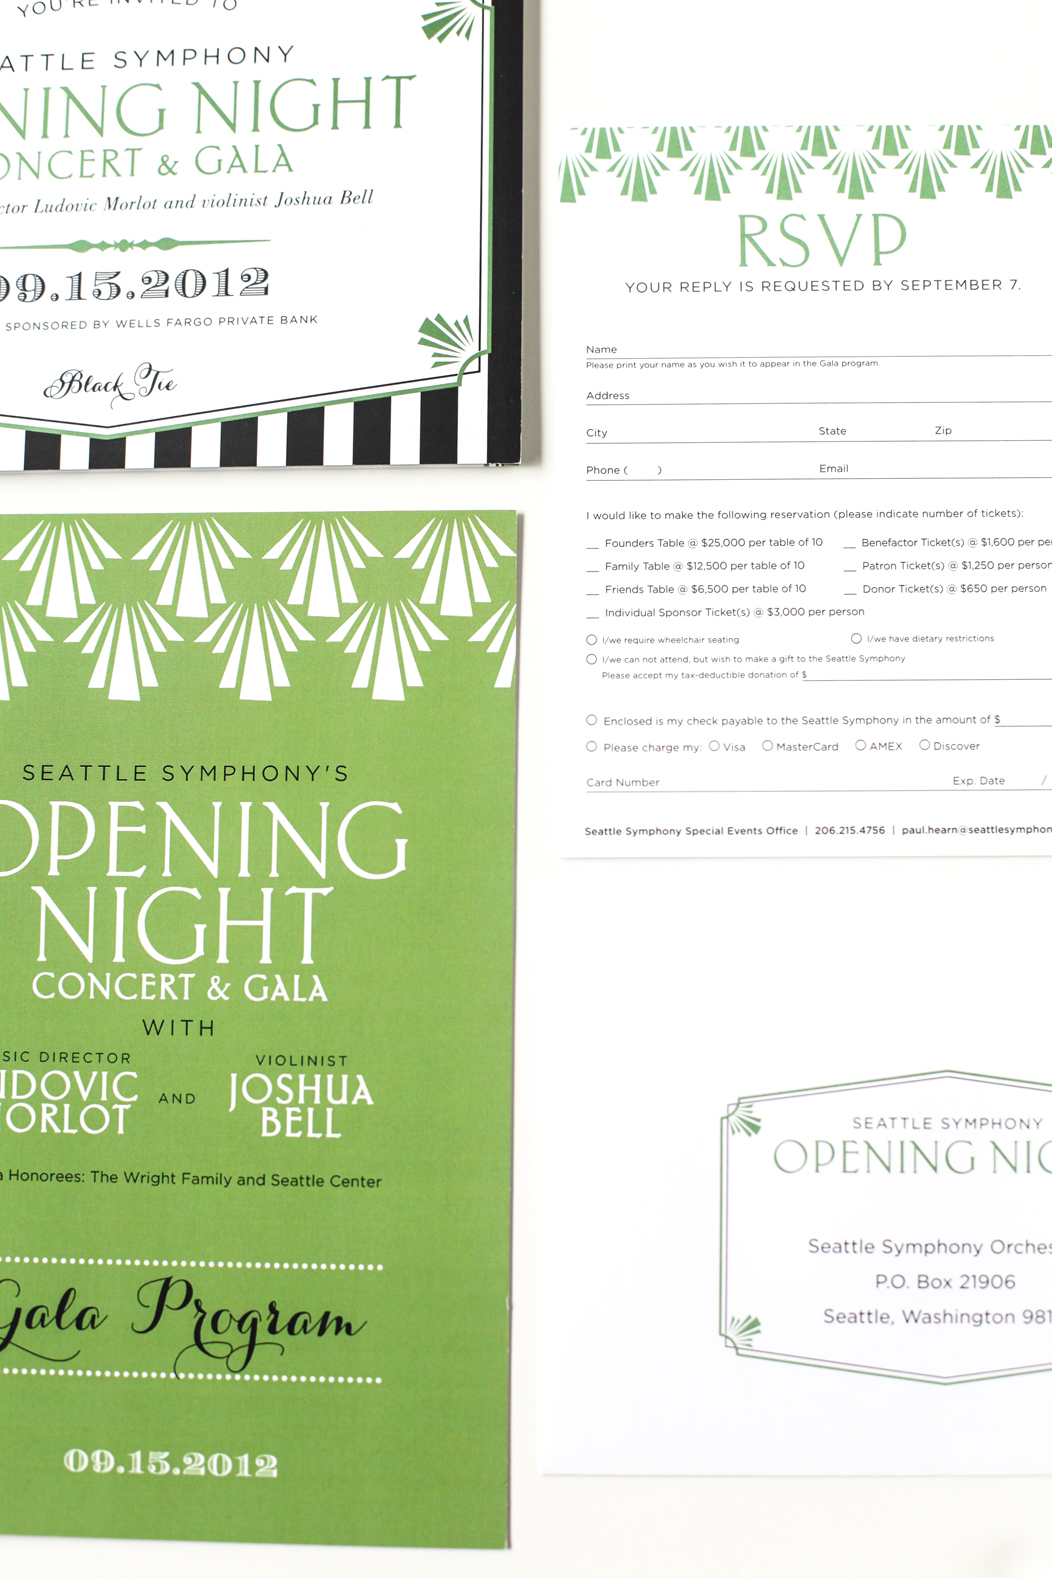 green, black and white Opening Night stationery designed by Iwona Konarski |  www.iwonak.com  |   #modern #stripes #2color #brightgreen #blackandgreen #stationery #event #invitation #trifold